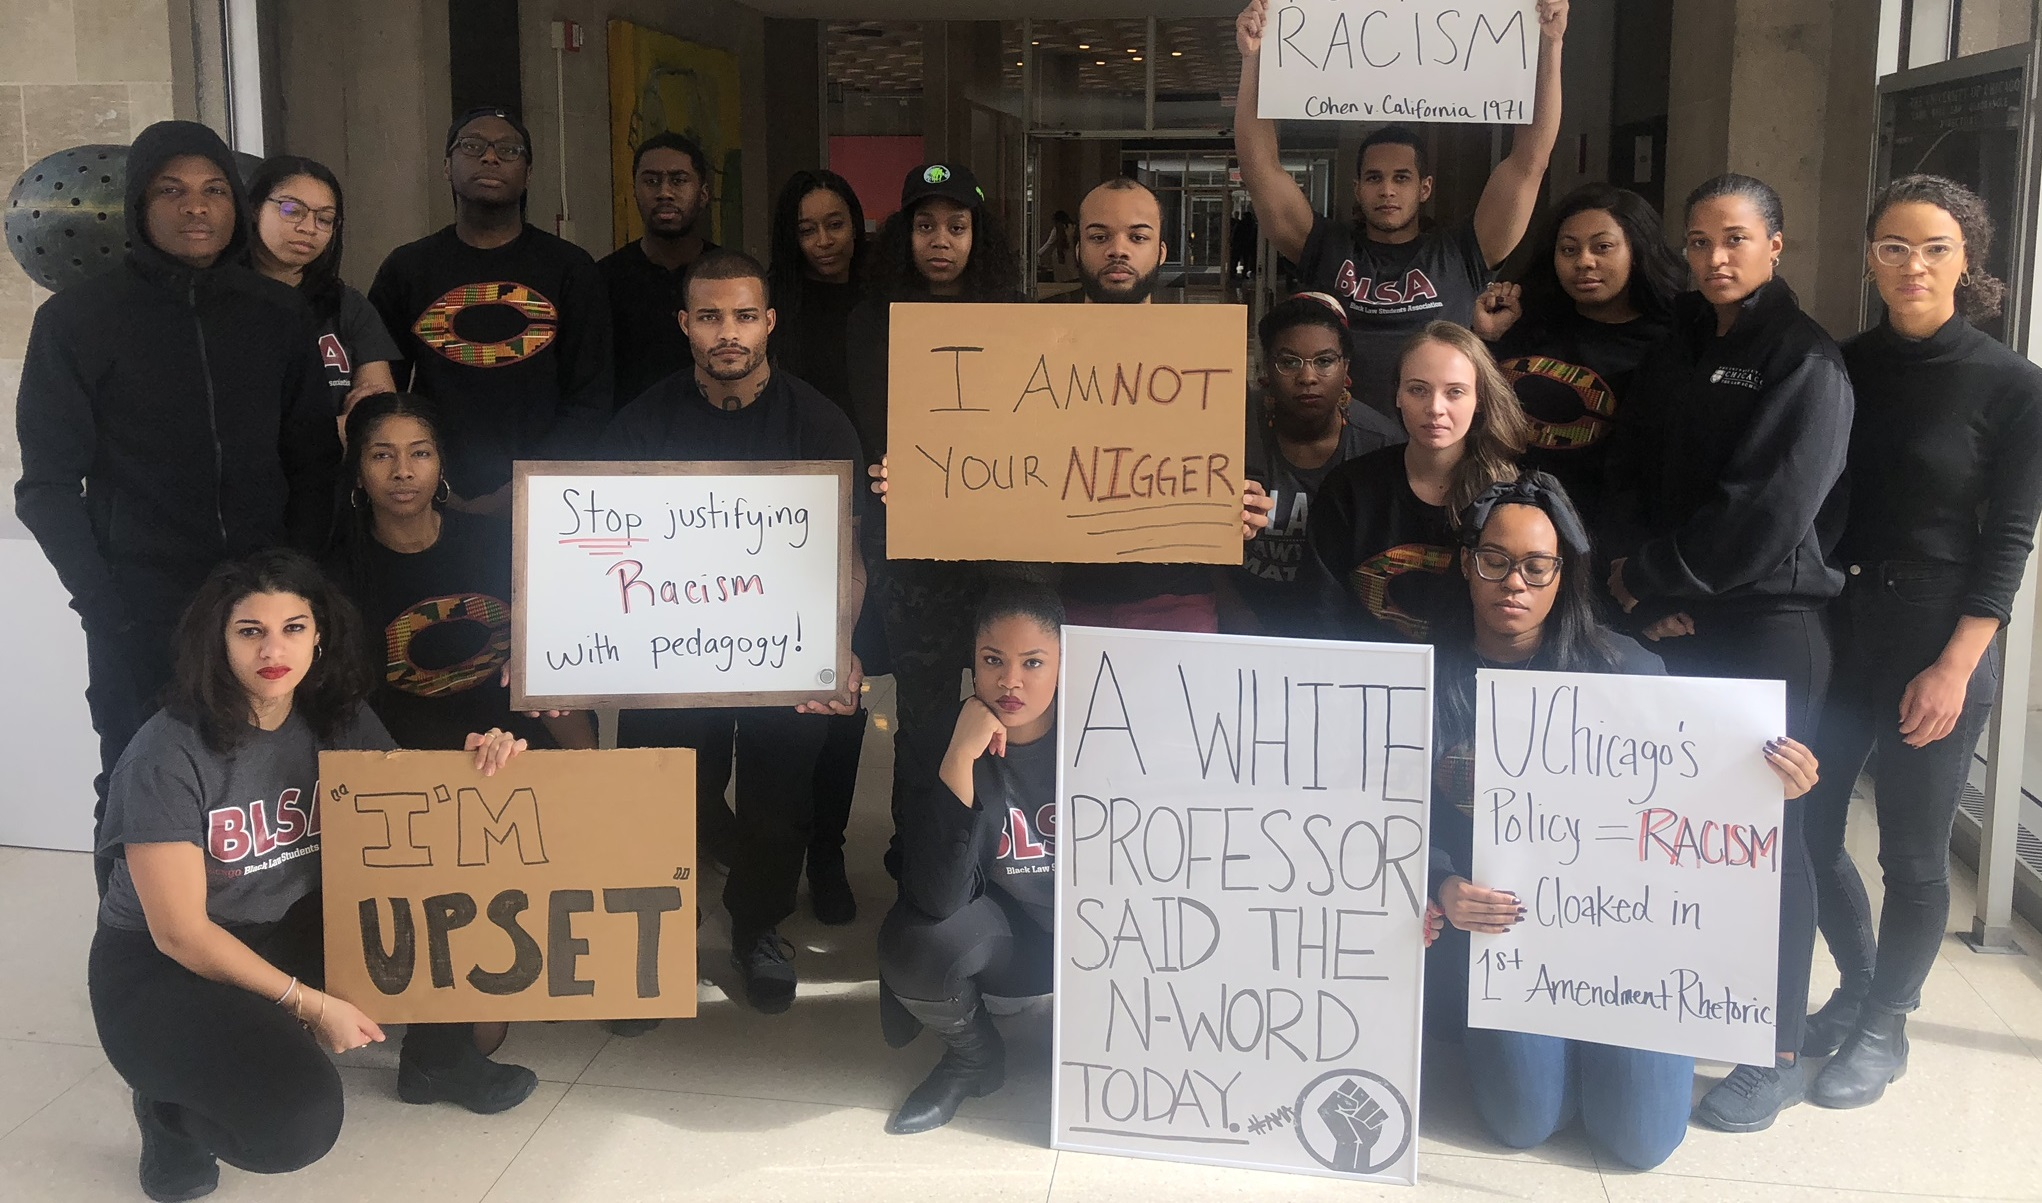 The Black Law Students Association at the University of Chicago protested the use of the n-word by a law professor.